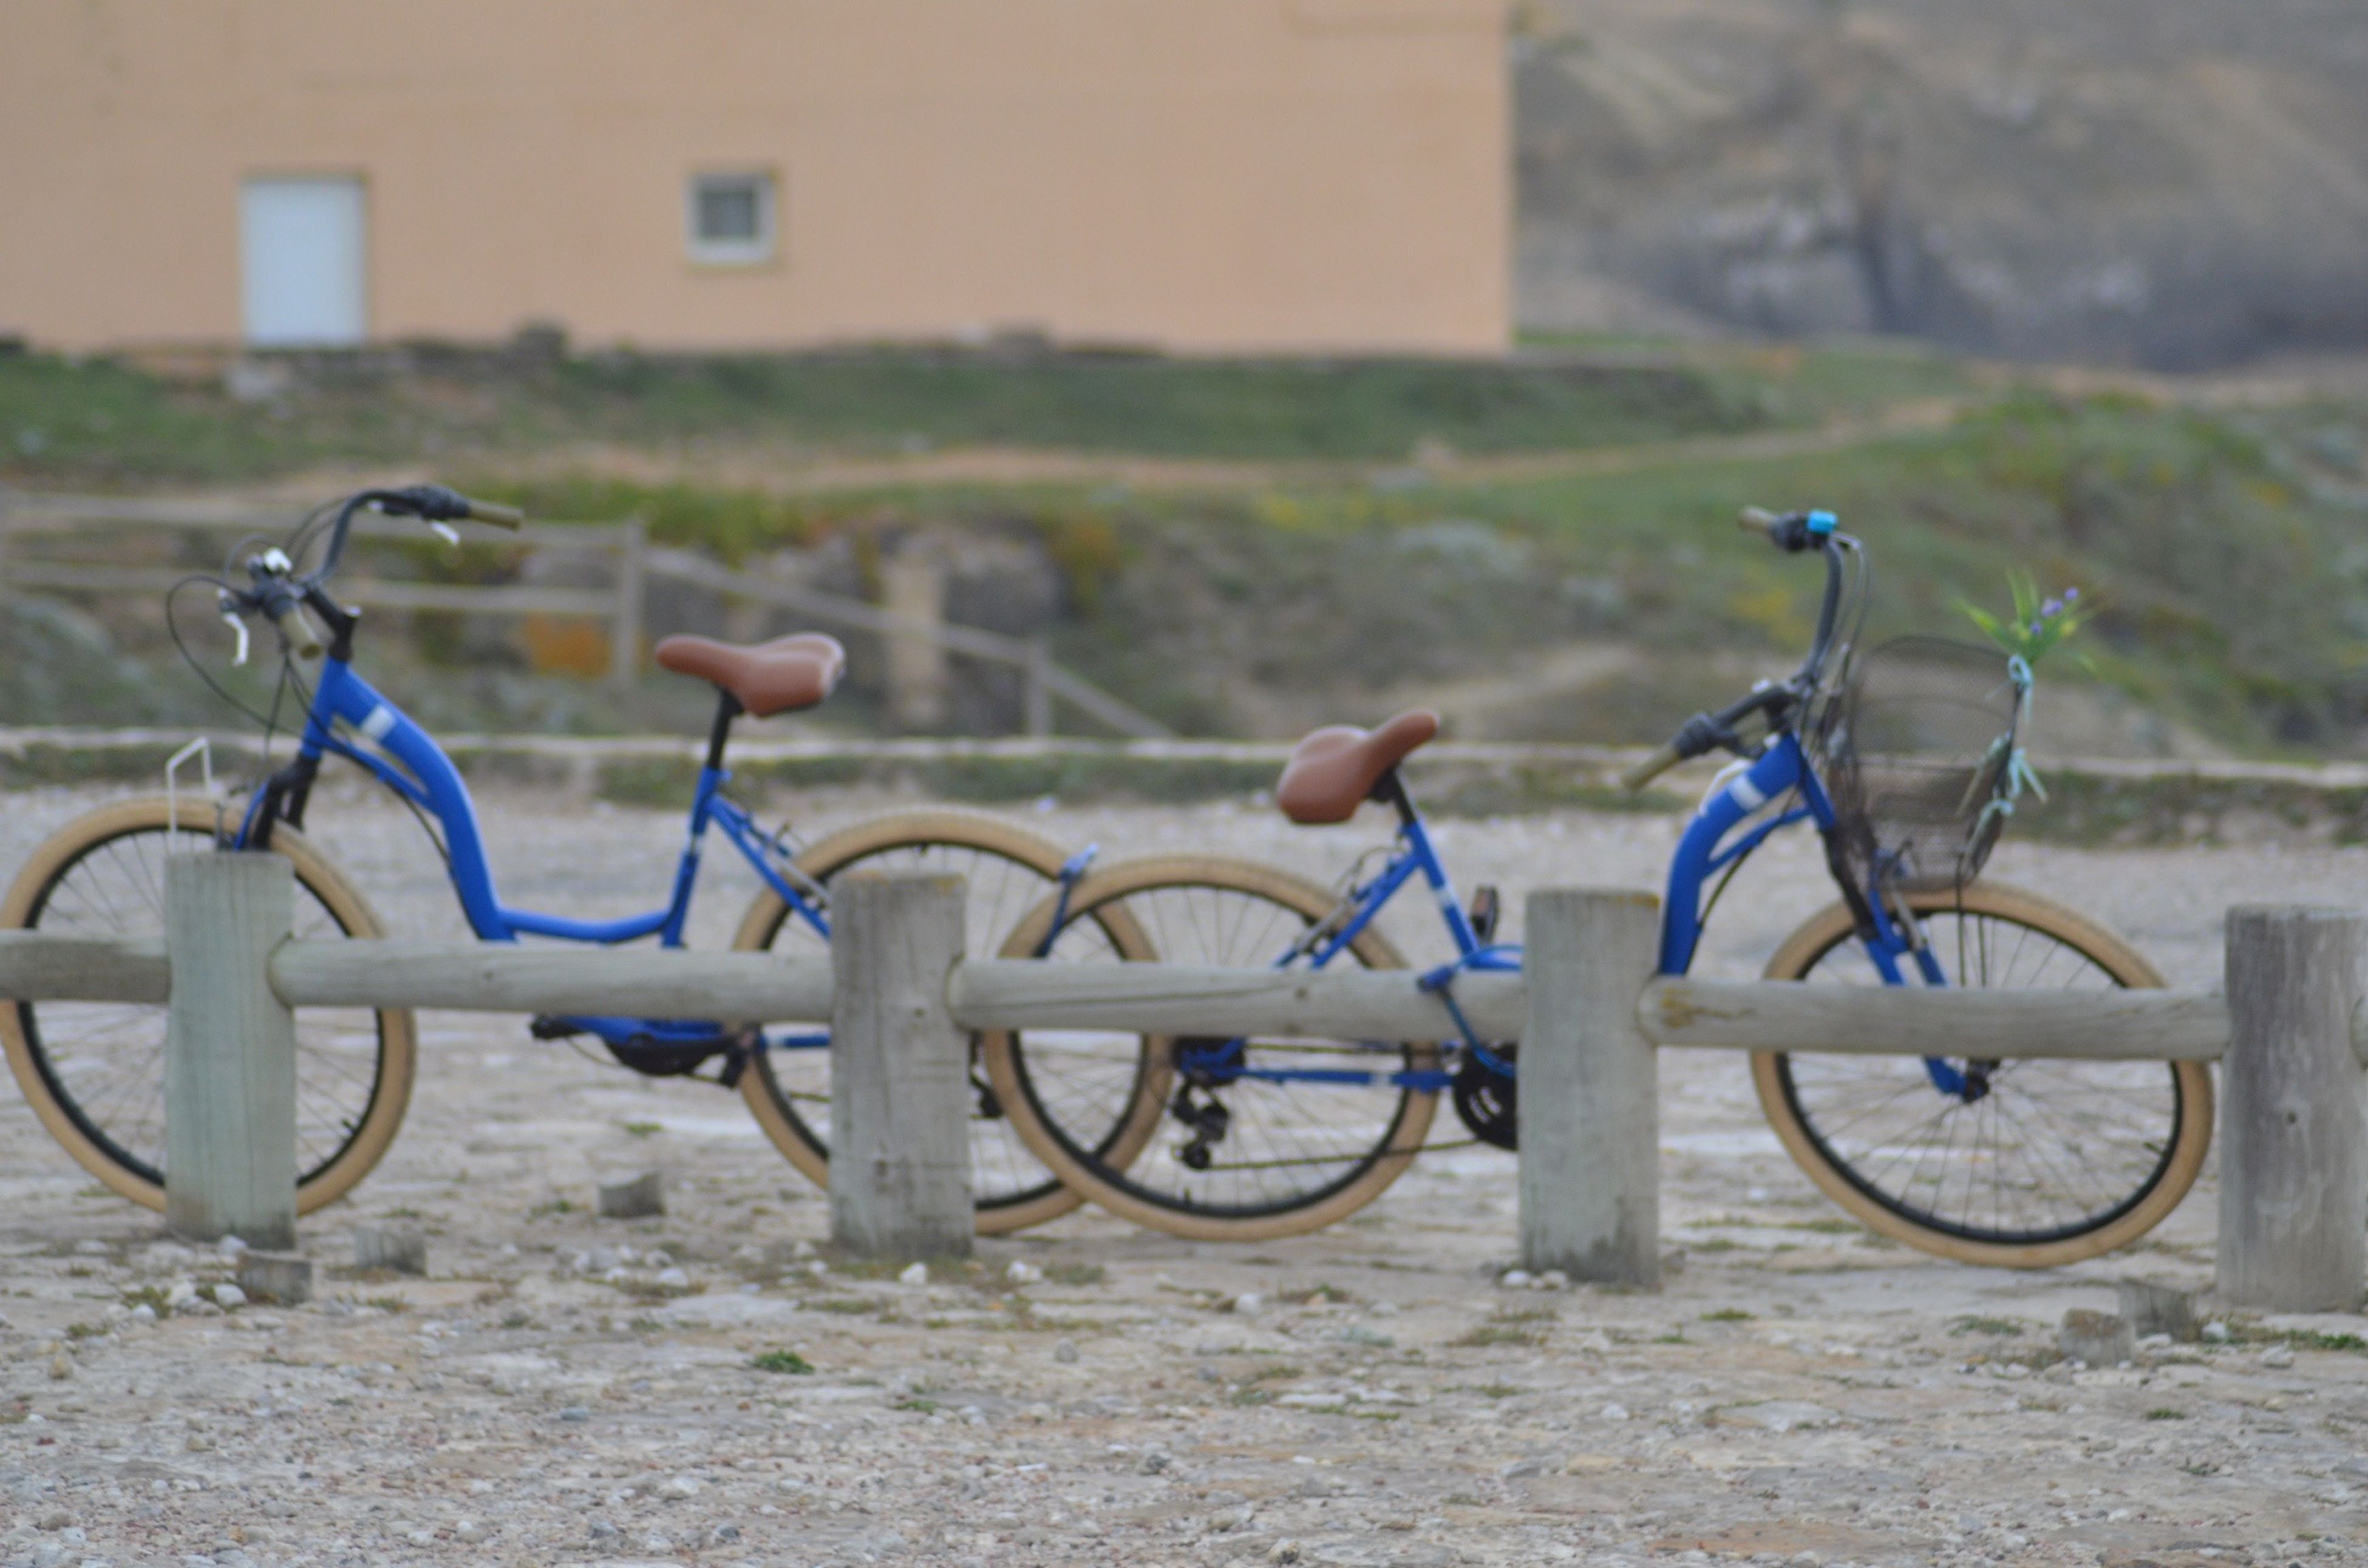 Relaxing Enjoying Life Bycicle Bycicles Bycicle Old Bycicle Parking Bycicle On The Beach